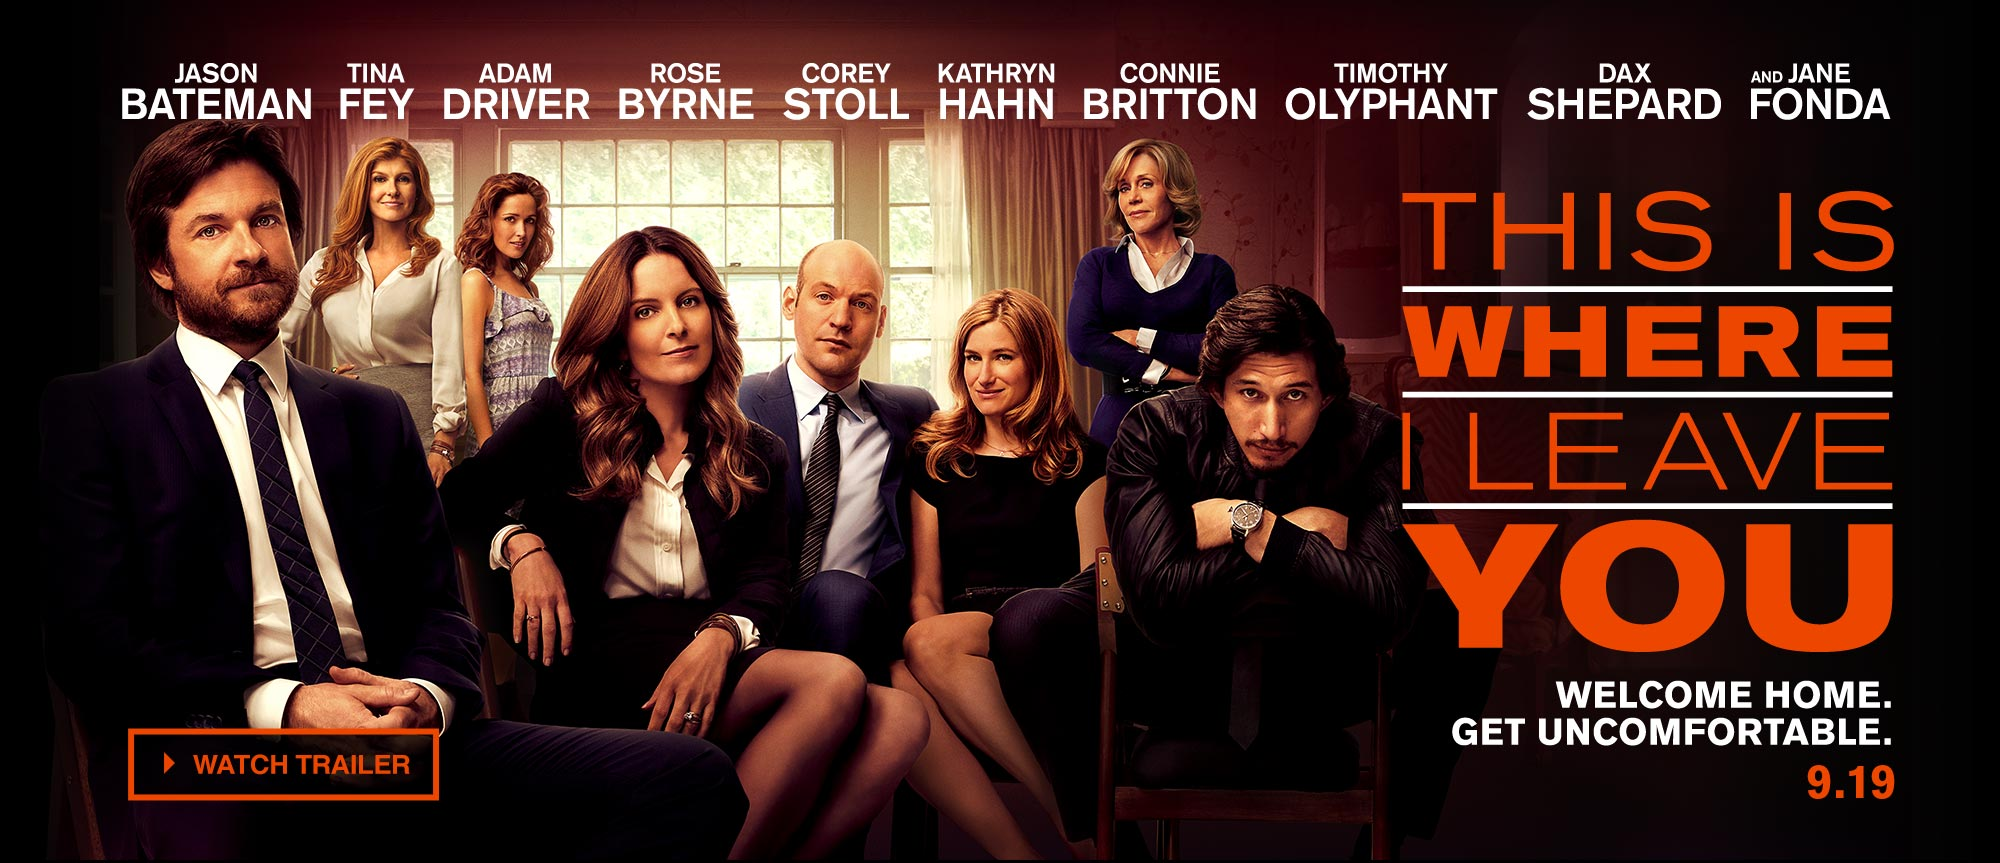 Watch This Is Where I Leave You (2014 Film) Full Movie Online Streaming